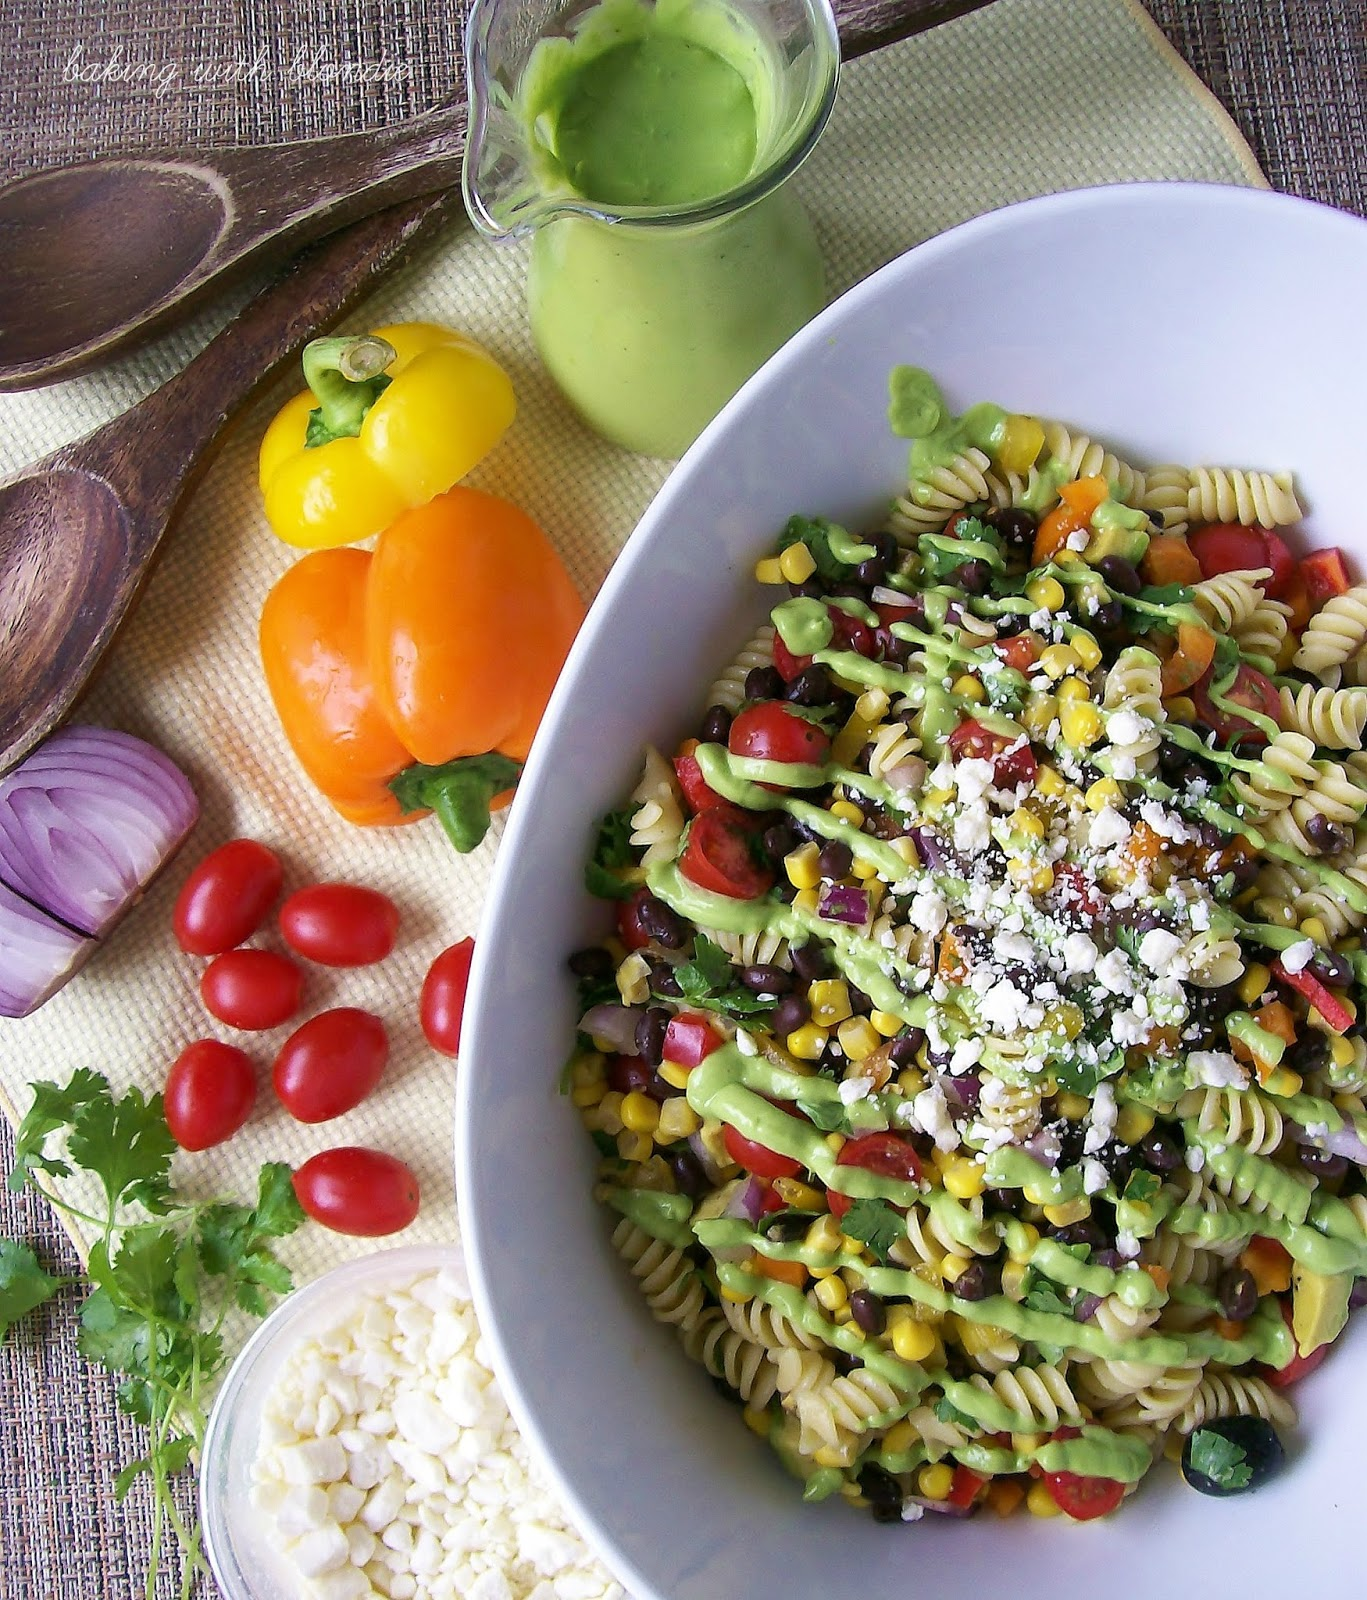 ... with Blondie : Southwestern Pasta Salad with Creamy Avocado Dressing